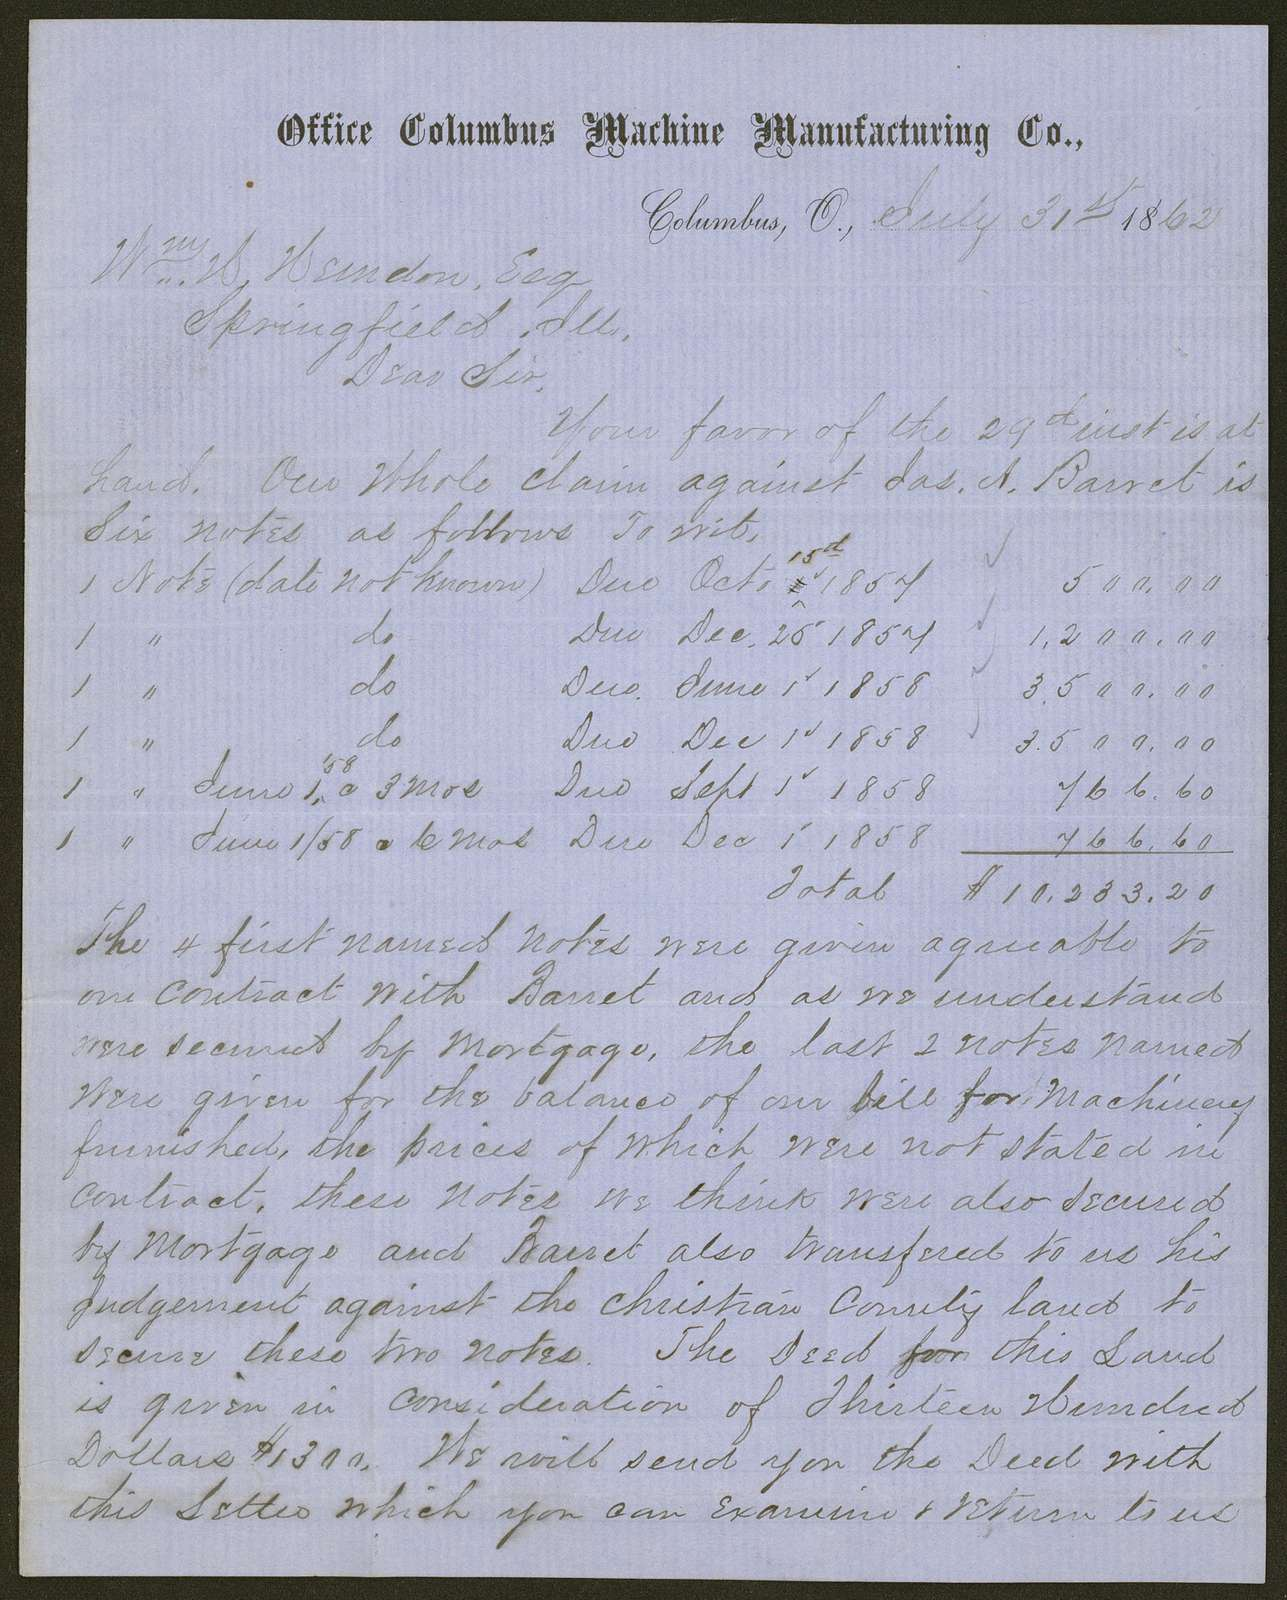 [Law papers] Letter to William H. Herndon, Esq. From W. D., July 31, 1862.